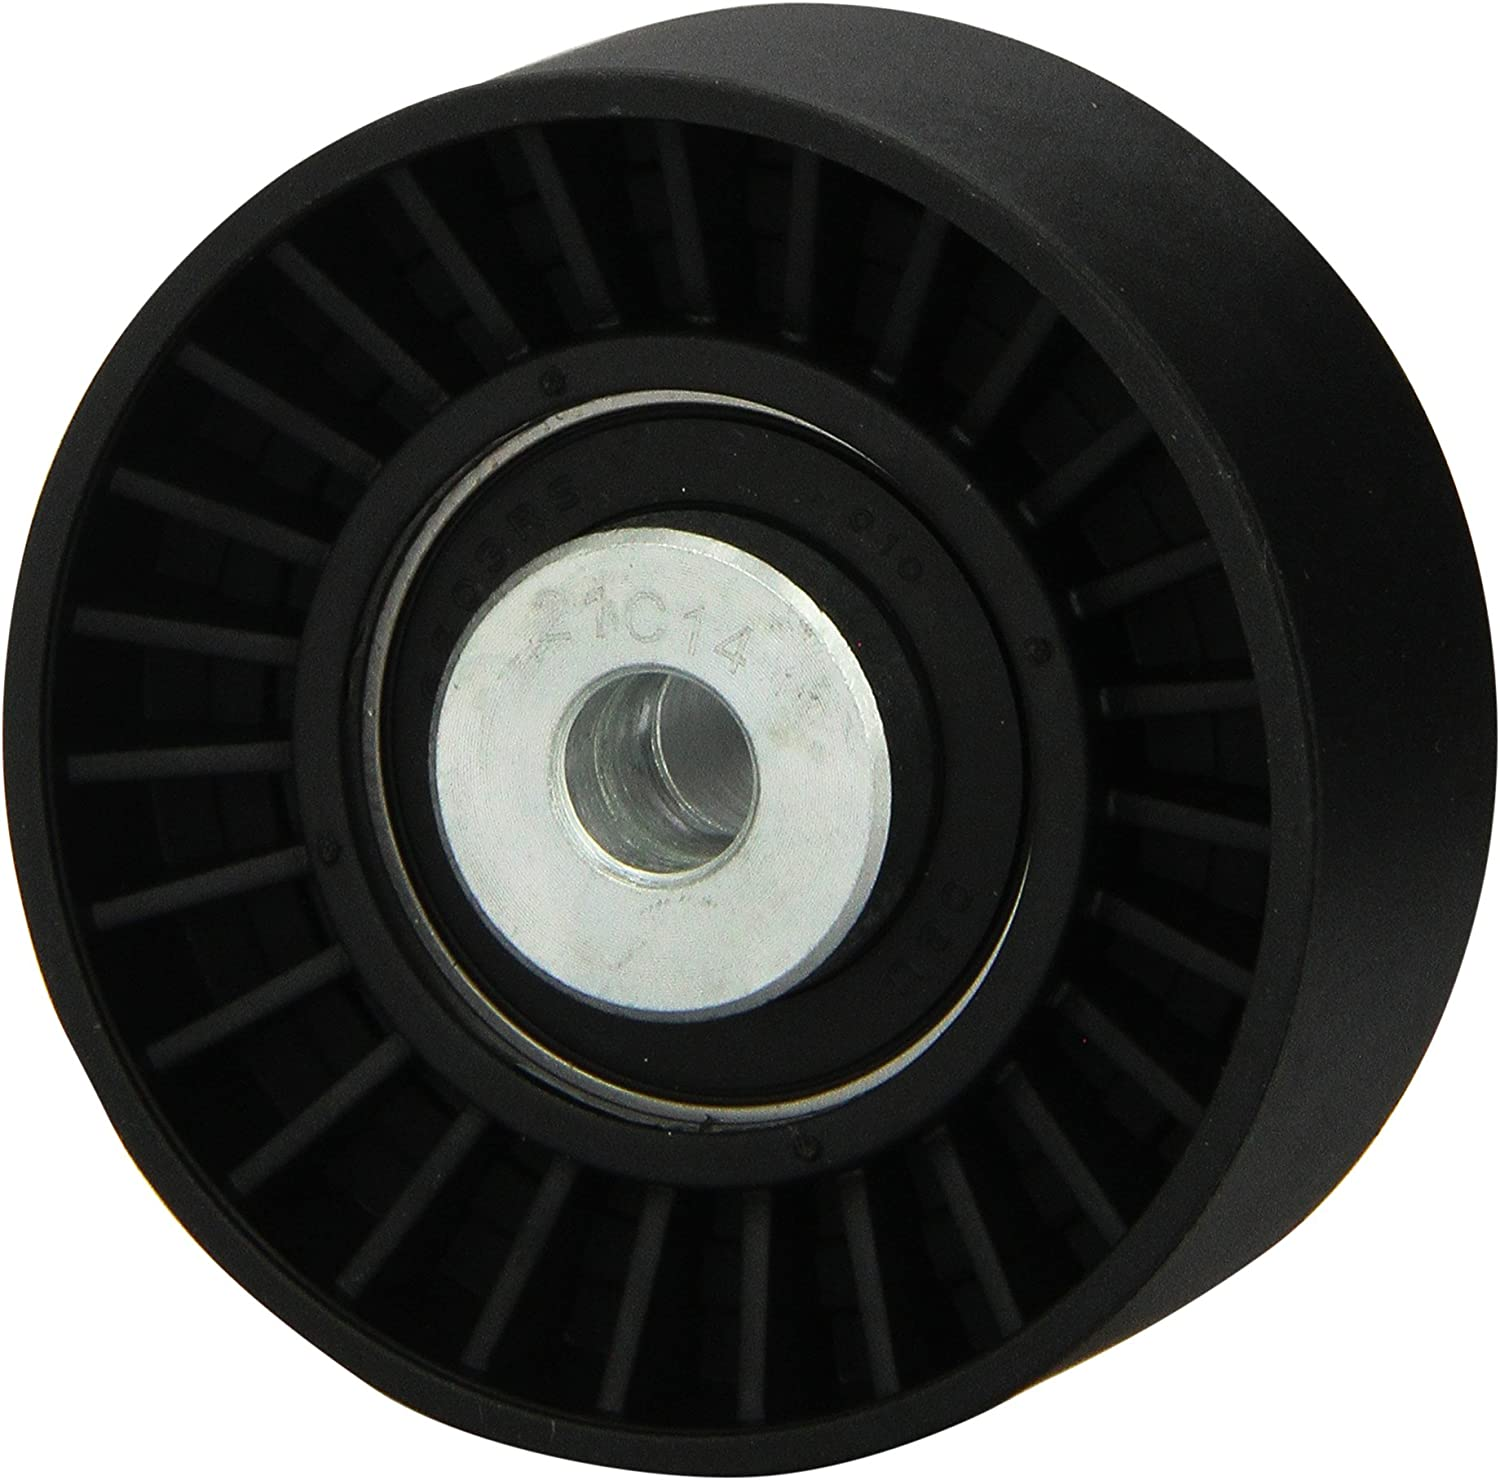 Dayco 89164 Idler Pulley